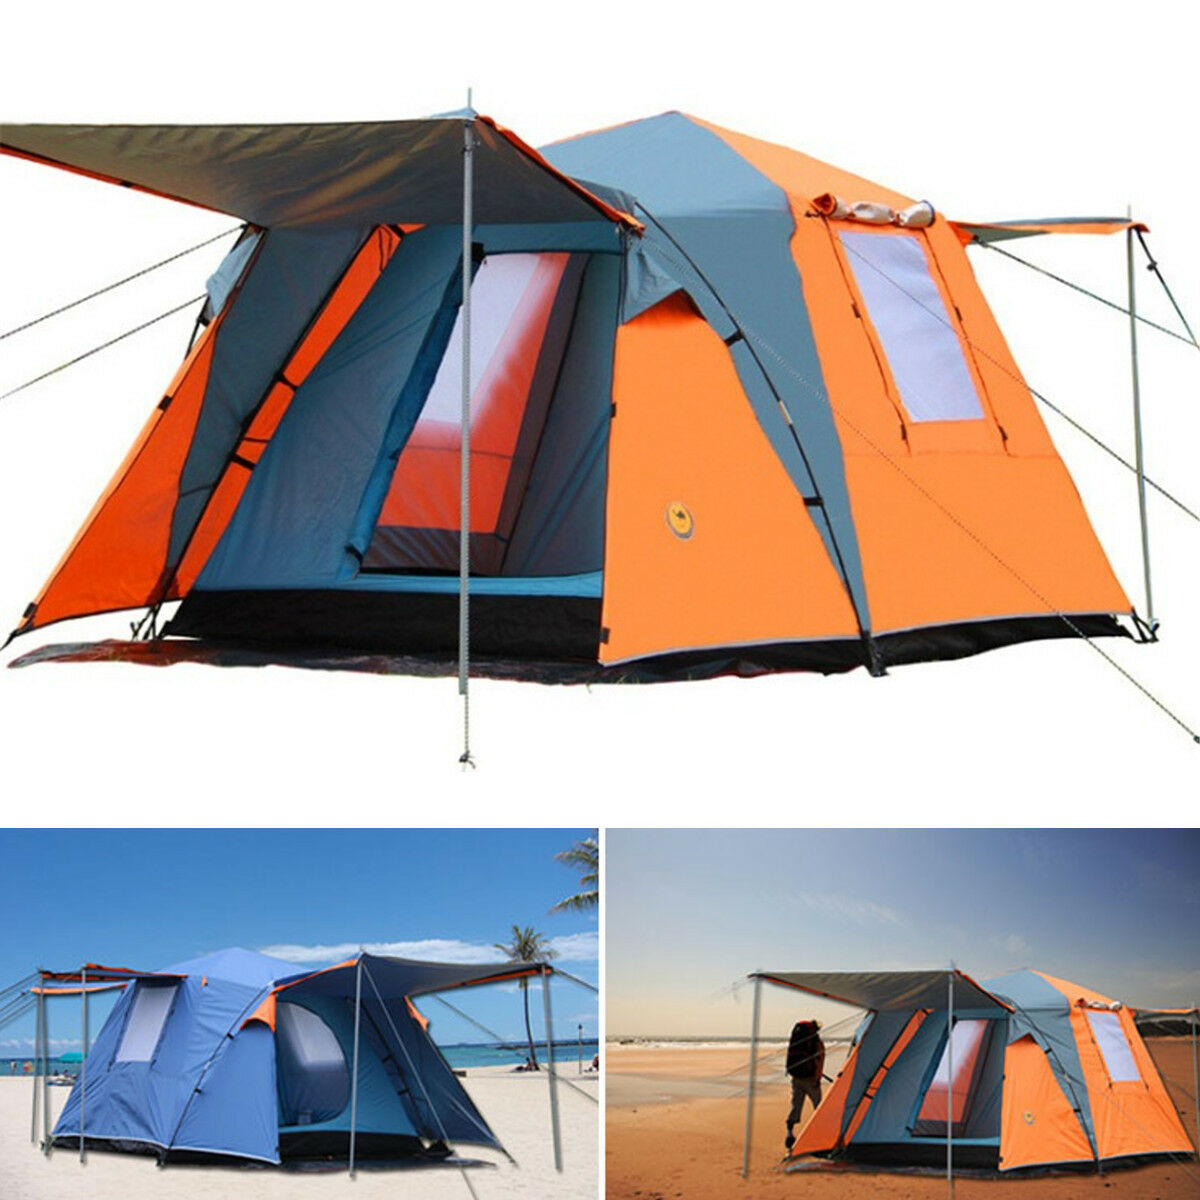 3-4 People Portable Waterproof Pop up Tent Camping Fishing Beach Outdoor Canopy